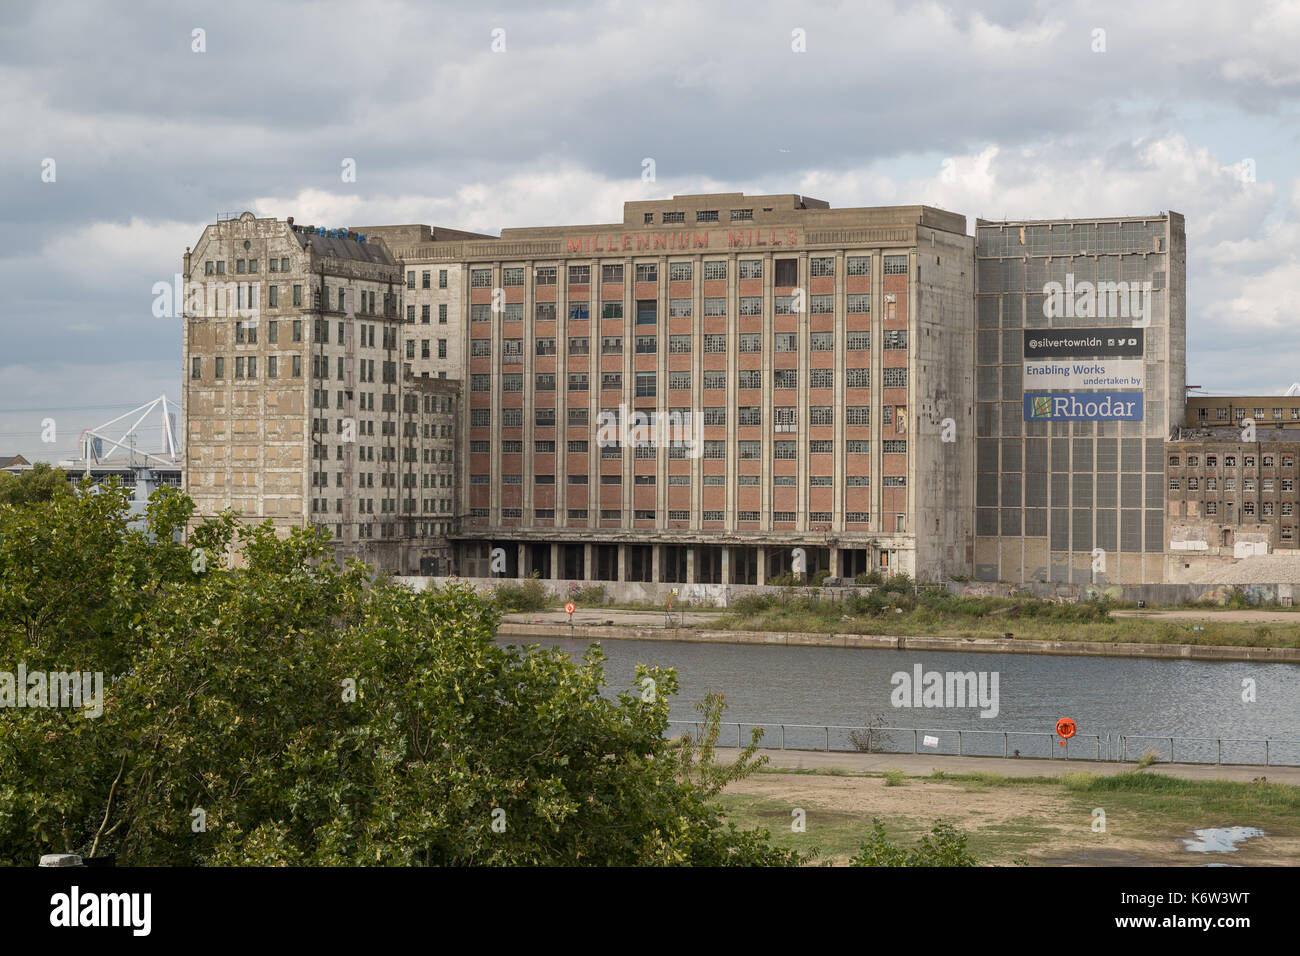 The derelict Spiller's Millennium Mills building at West Silvertown, East London, UK. - Stock Image